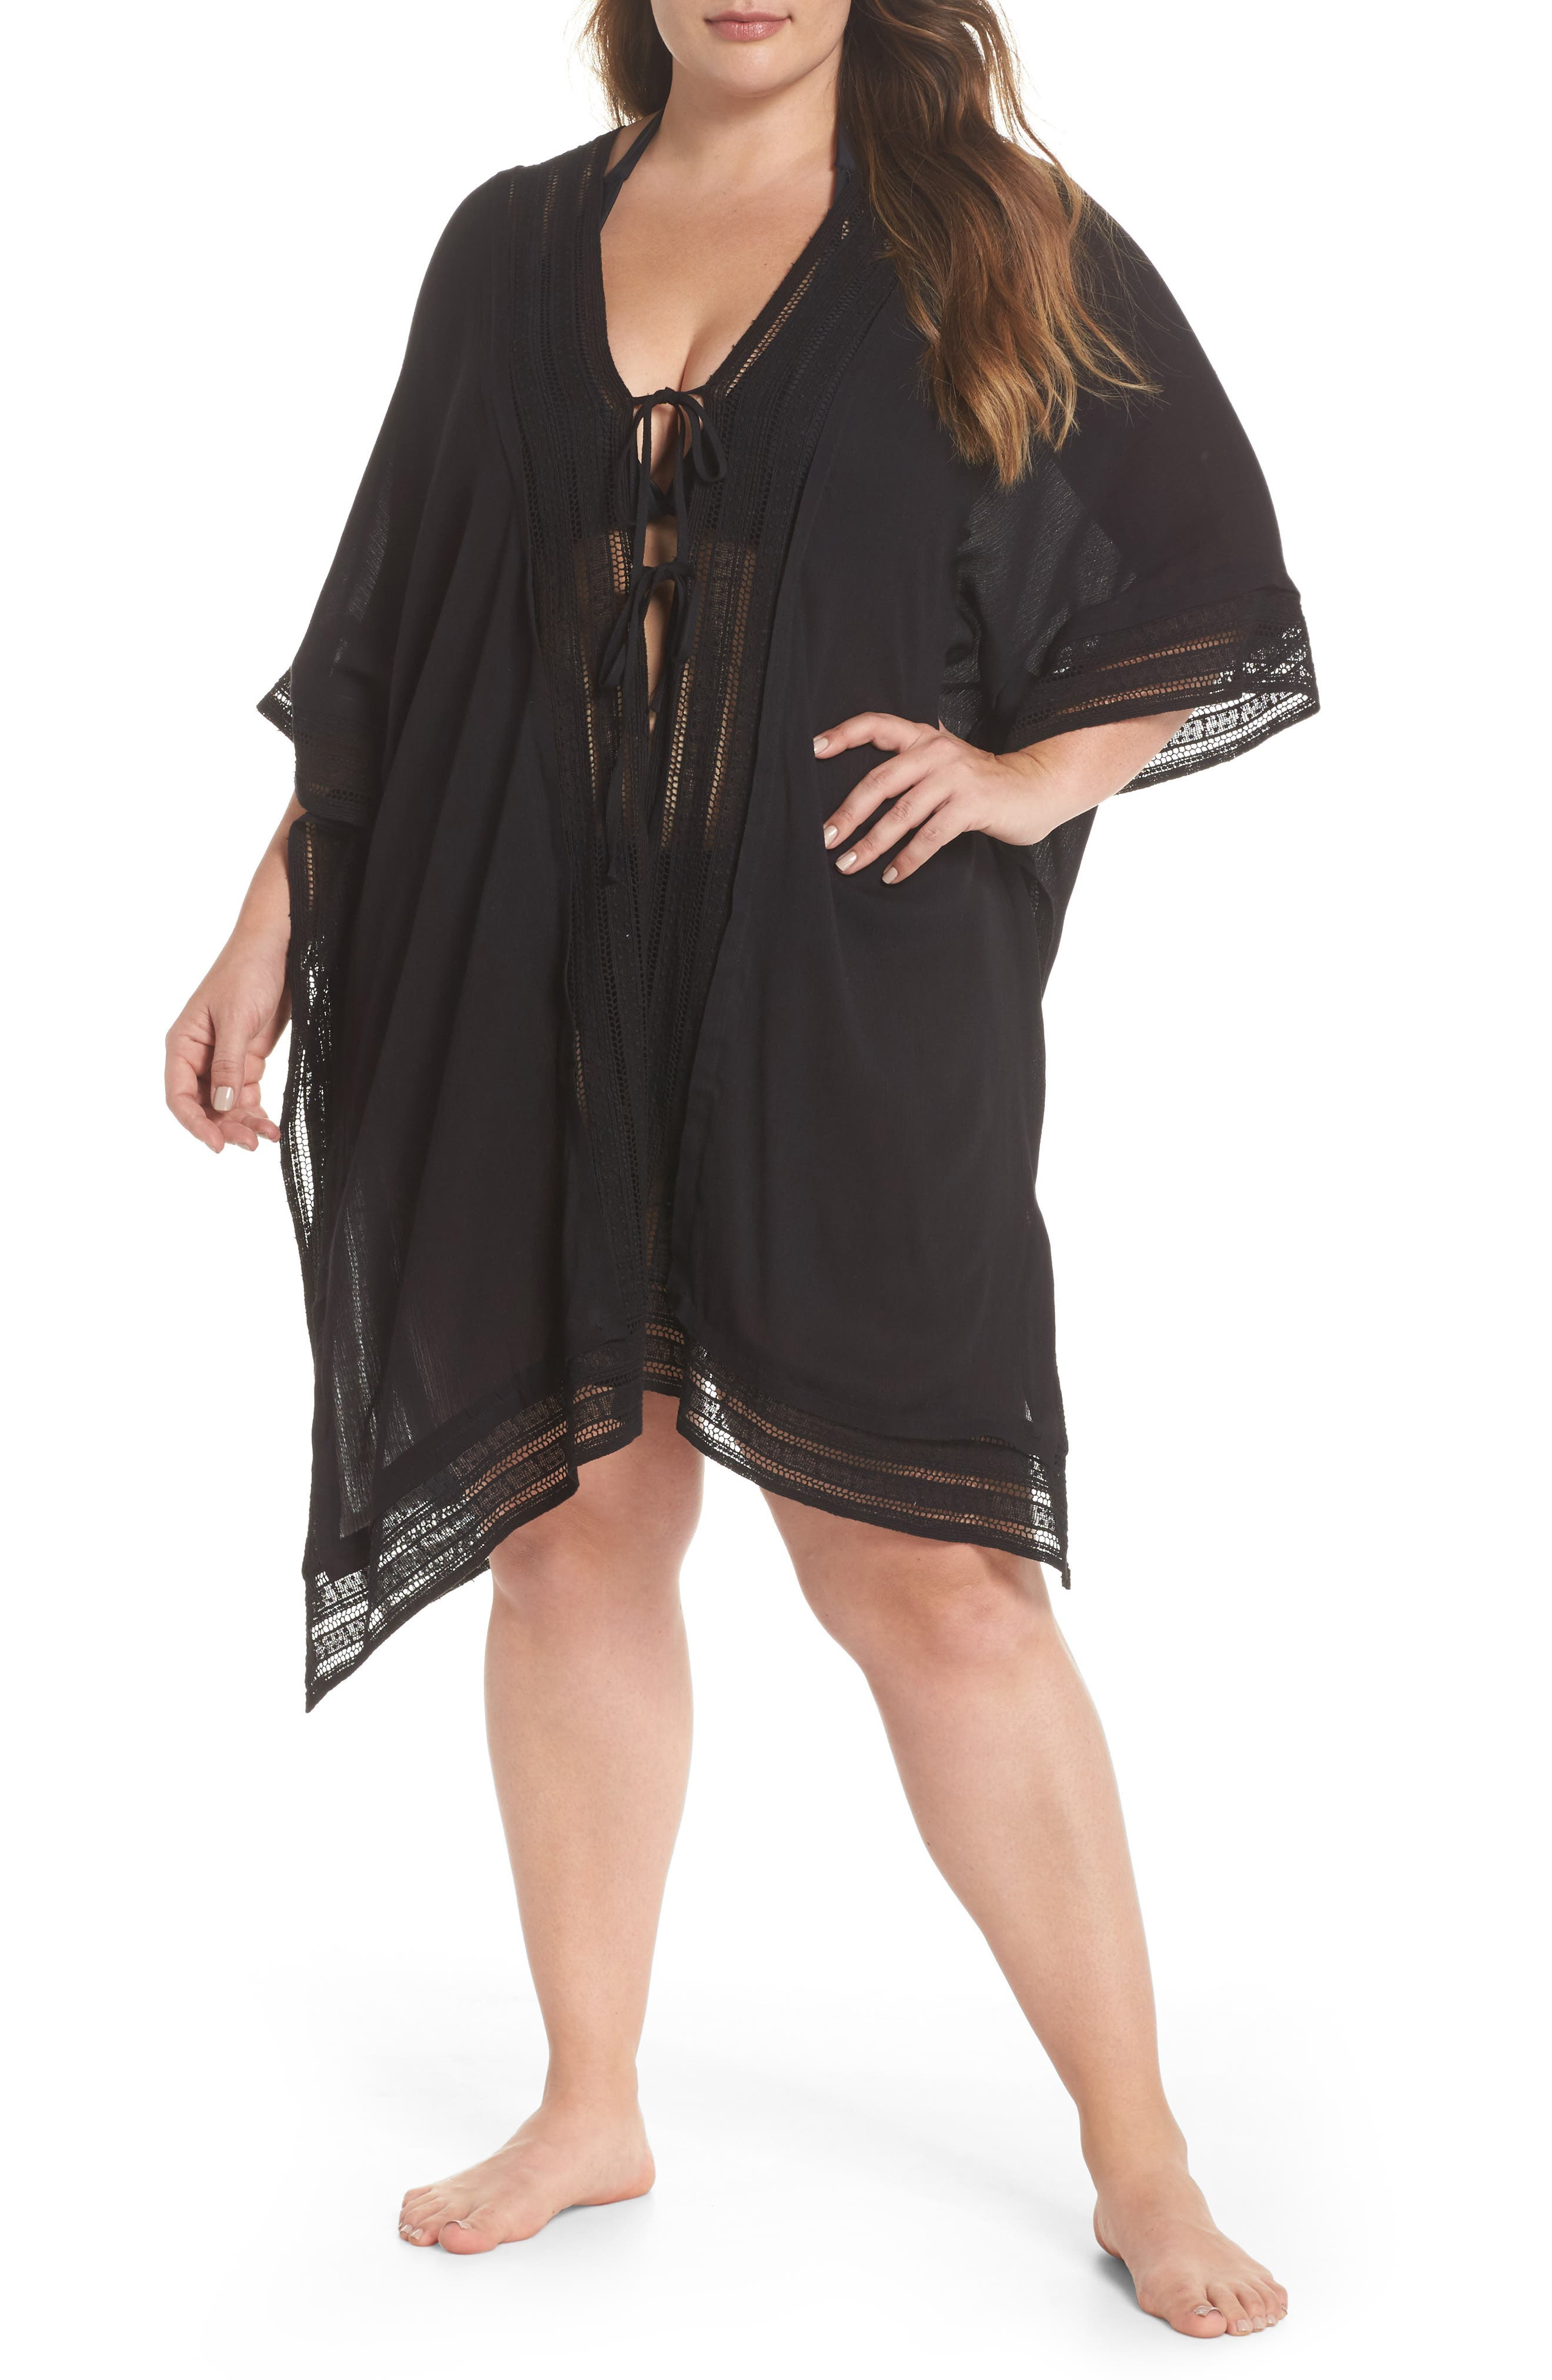 Muche et Muchette Serendipity Cover-Up Tunic (Plus Size)